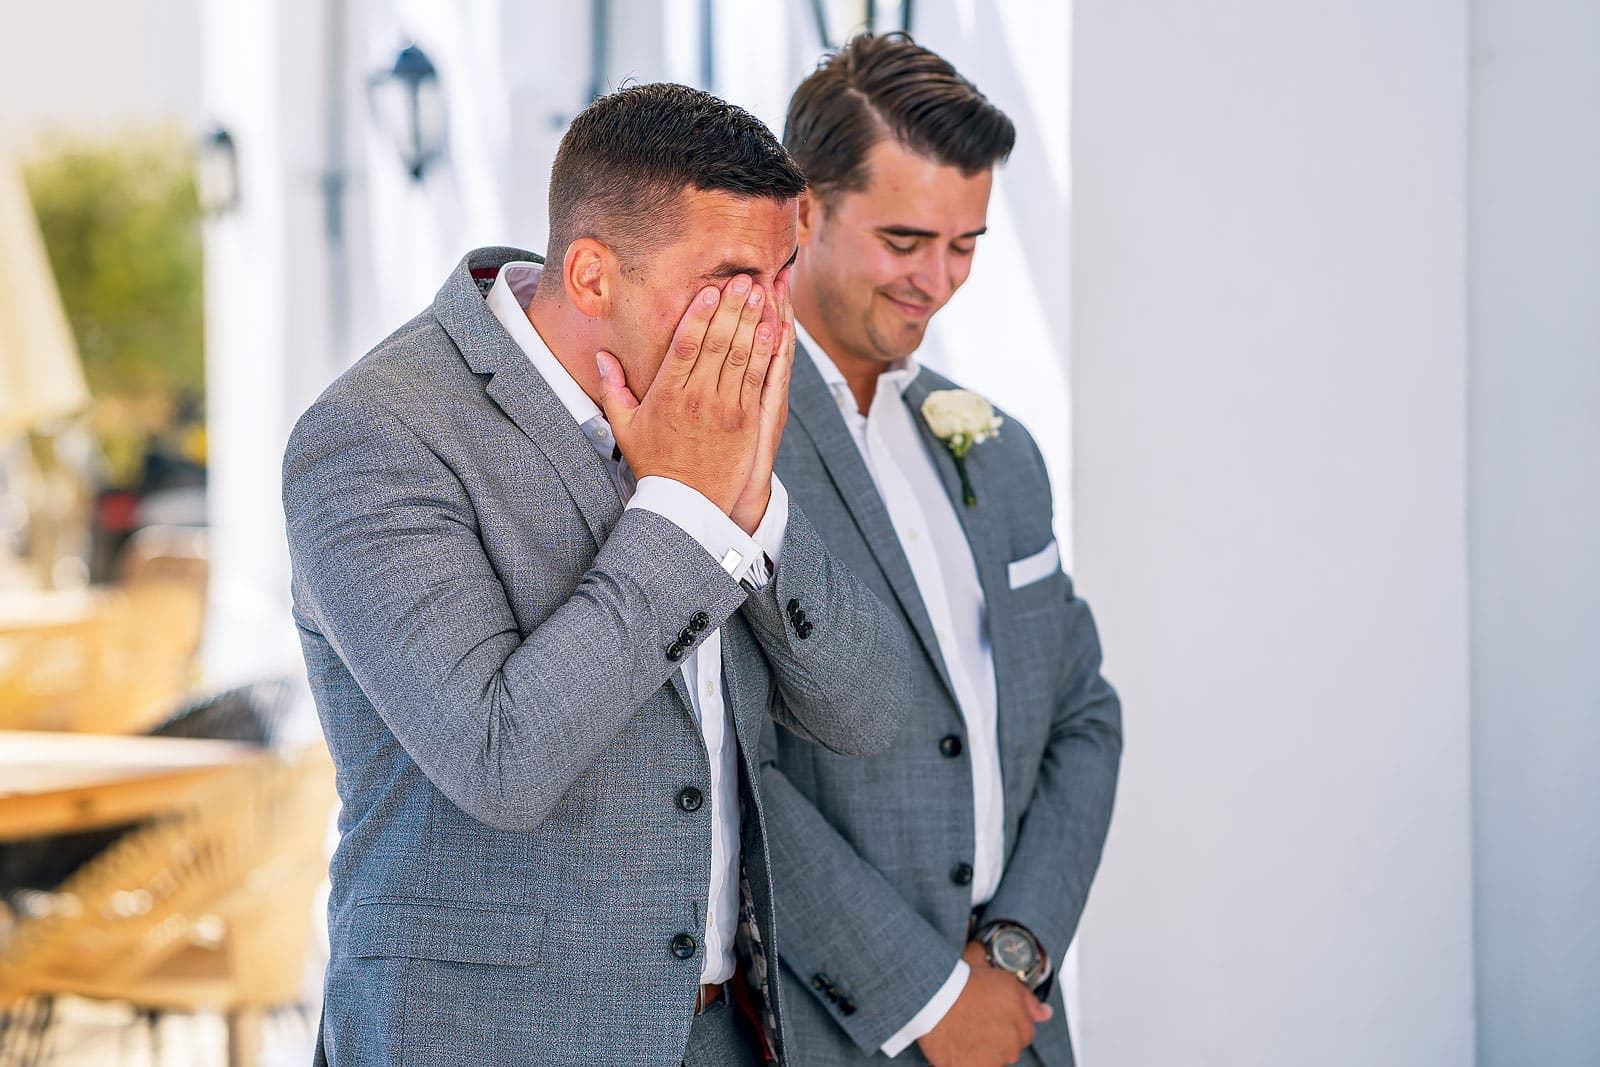 Emotional groom at Quinta Dos Santos wedding Algarve